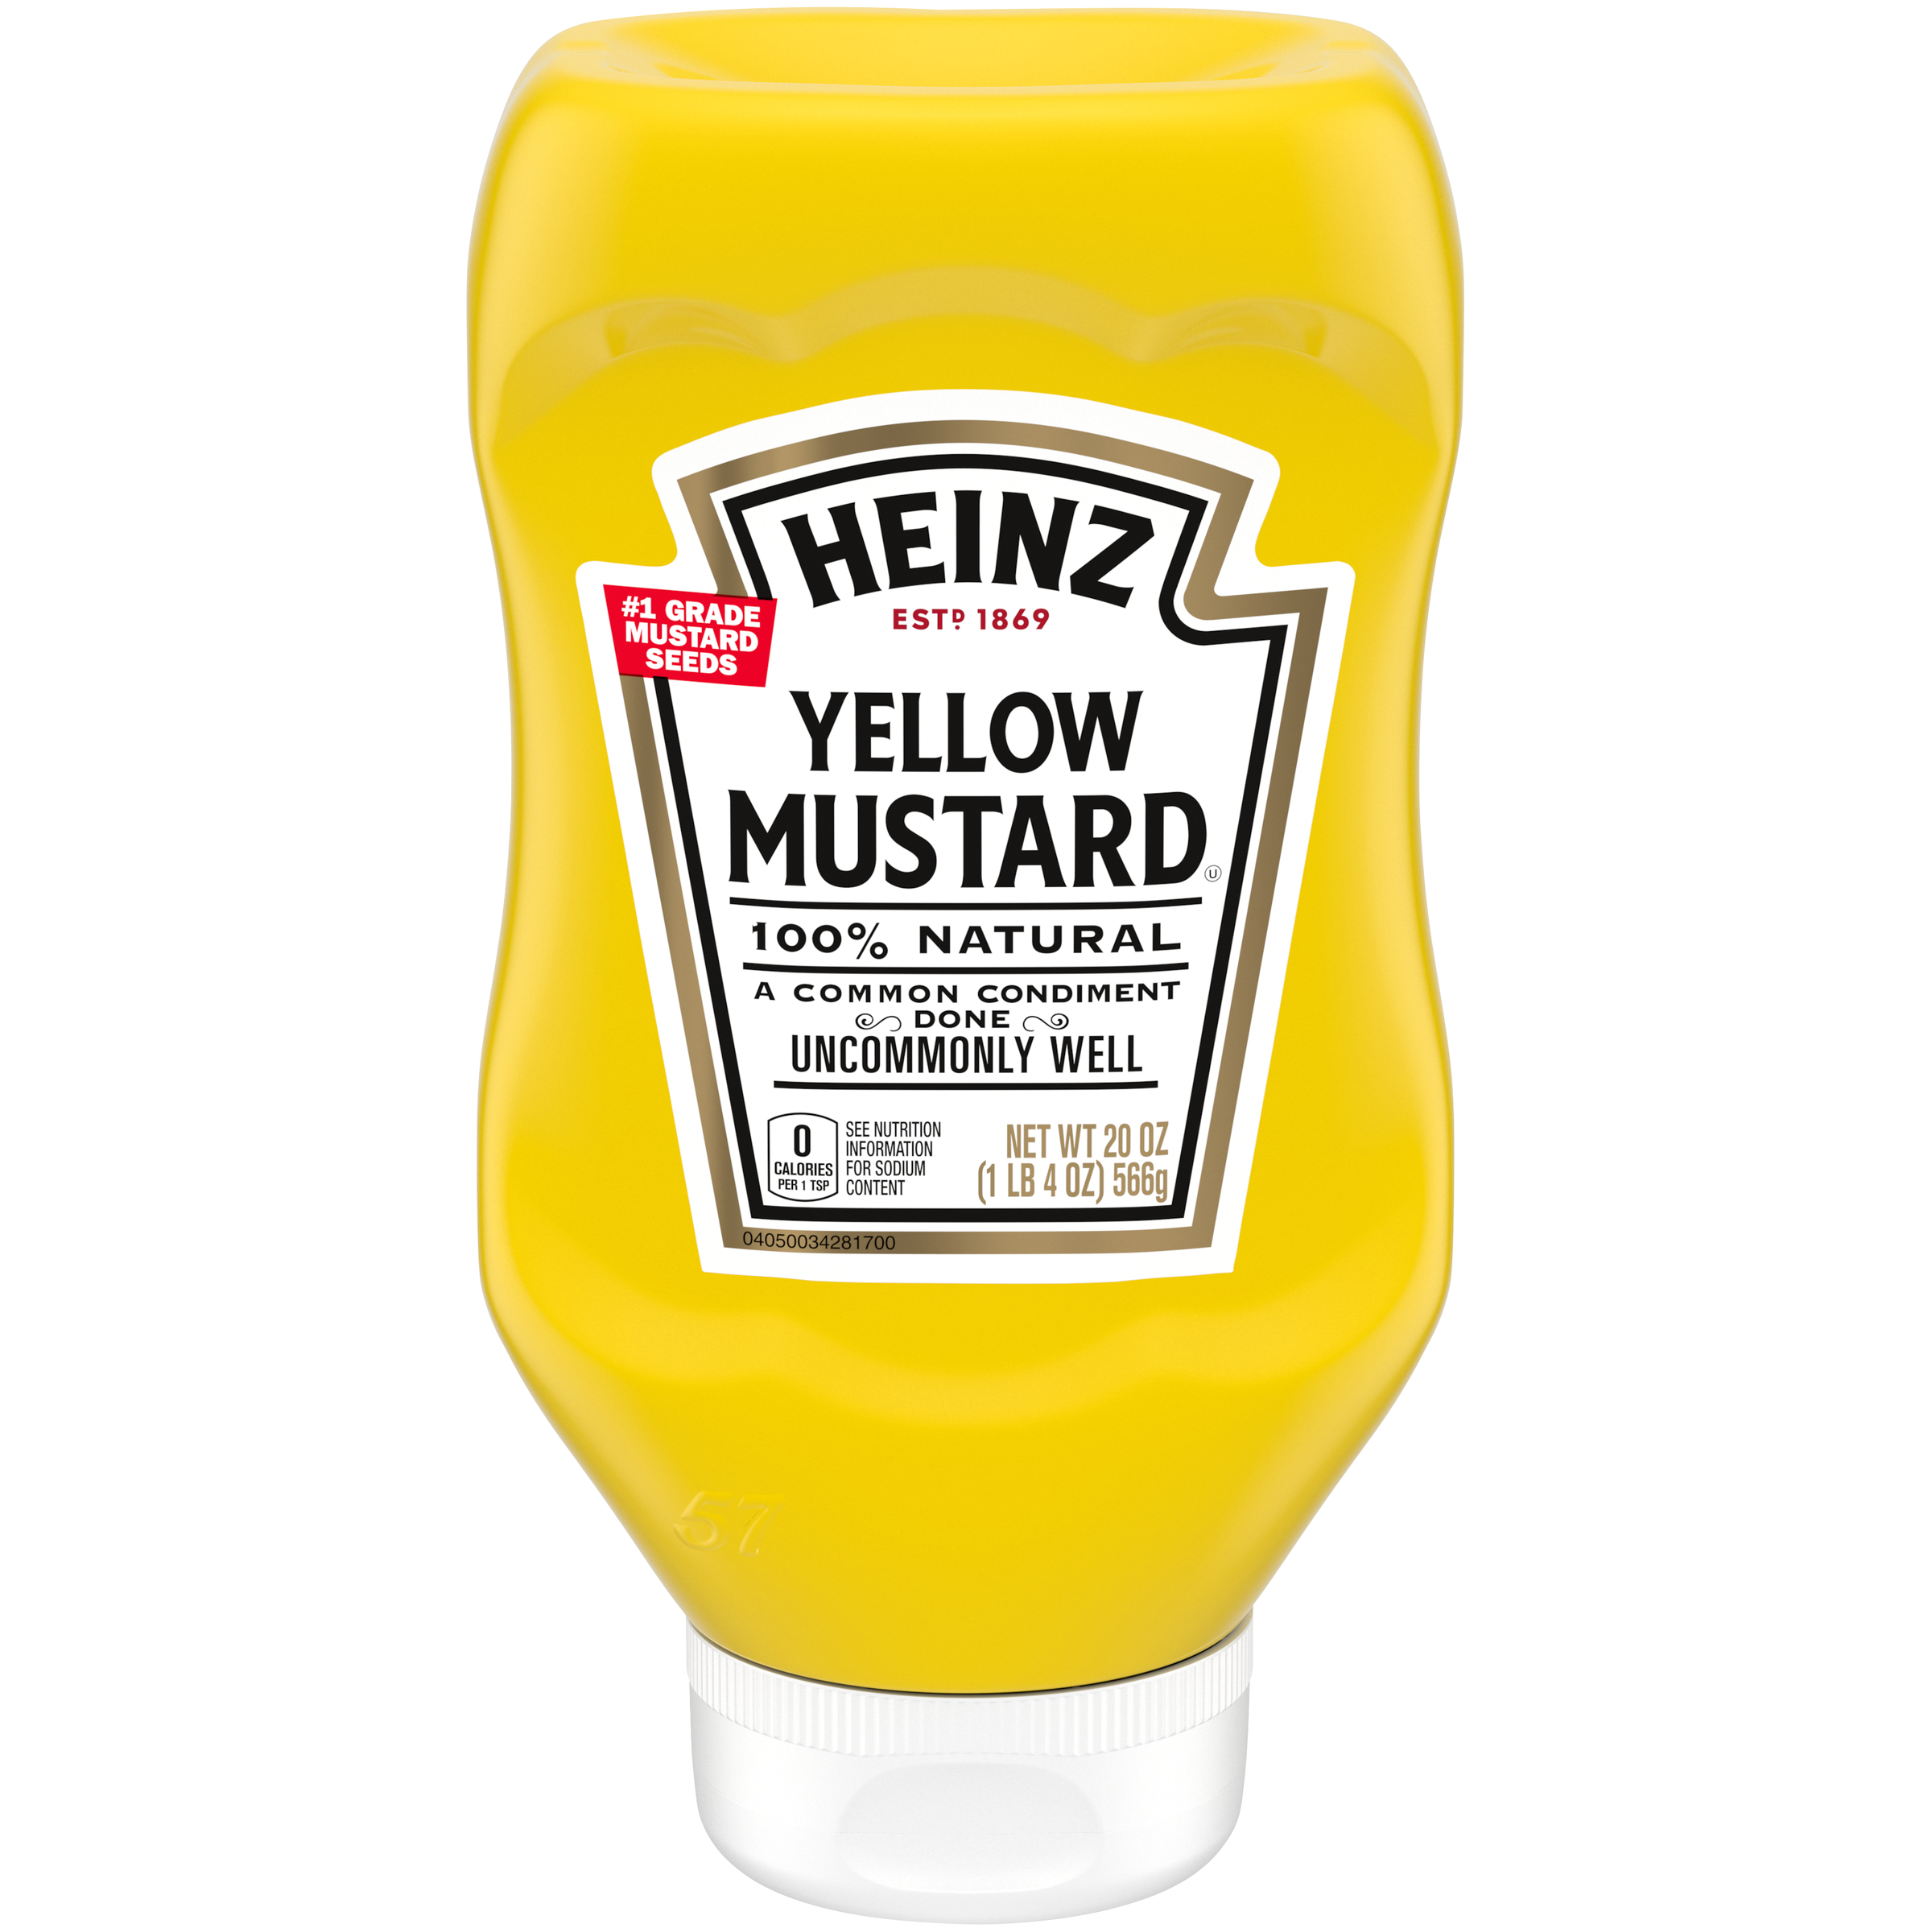 Heinz Yellow Mustard 20 oz Bottle image